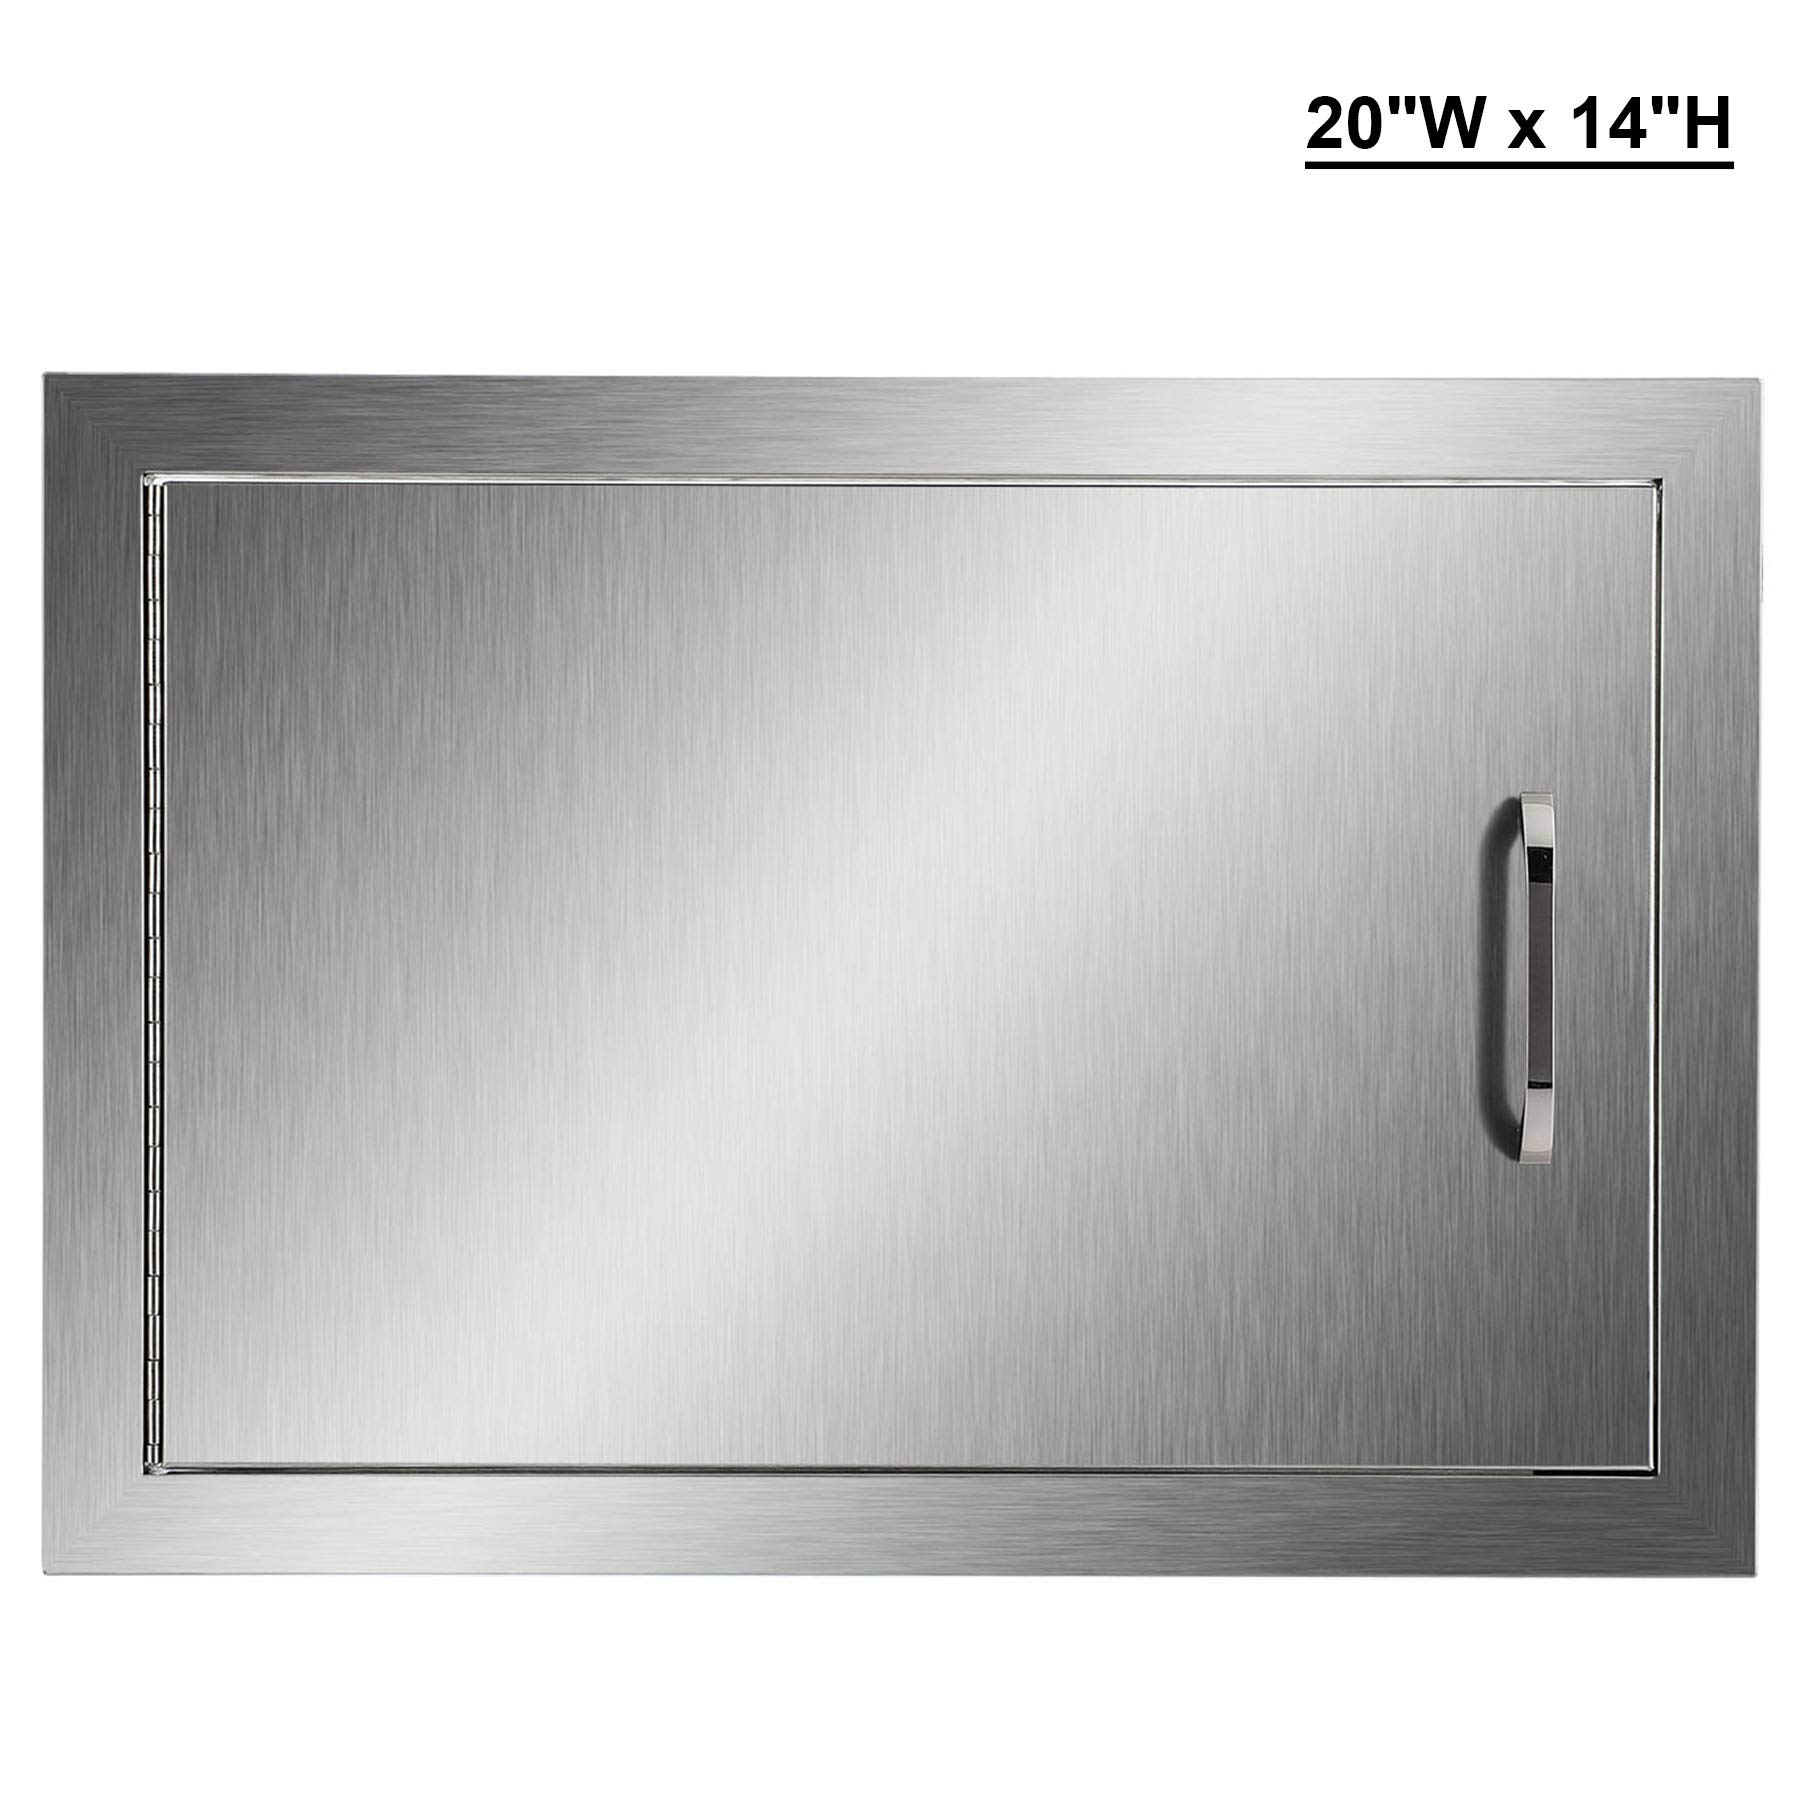 CO-Z Outdoor Kitchen Doors, 304 Brushed Stainless Steel Single Access Doors for Outdoor Kitchen, Commercial BBQ Island, Grilling Station, Outside Cabinet, Barbeque Grill, Built-in (20'' W x 14'' H)